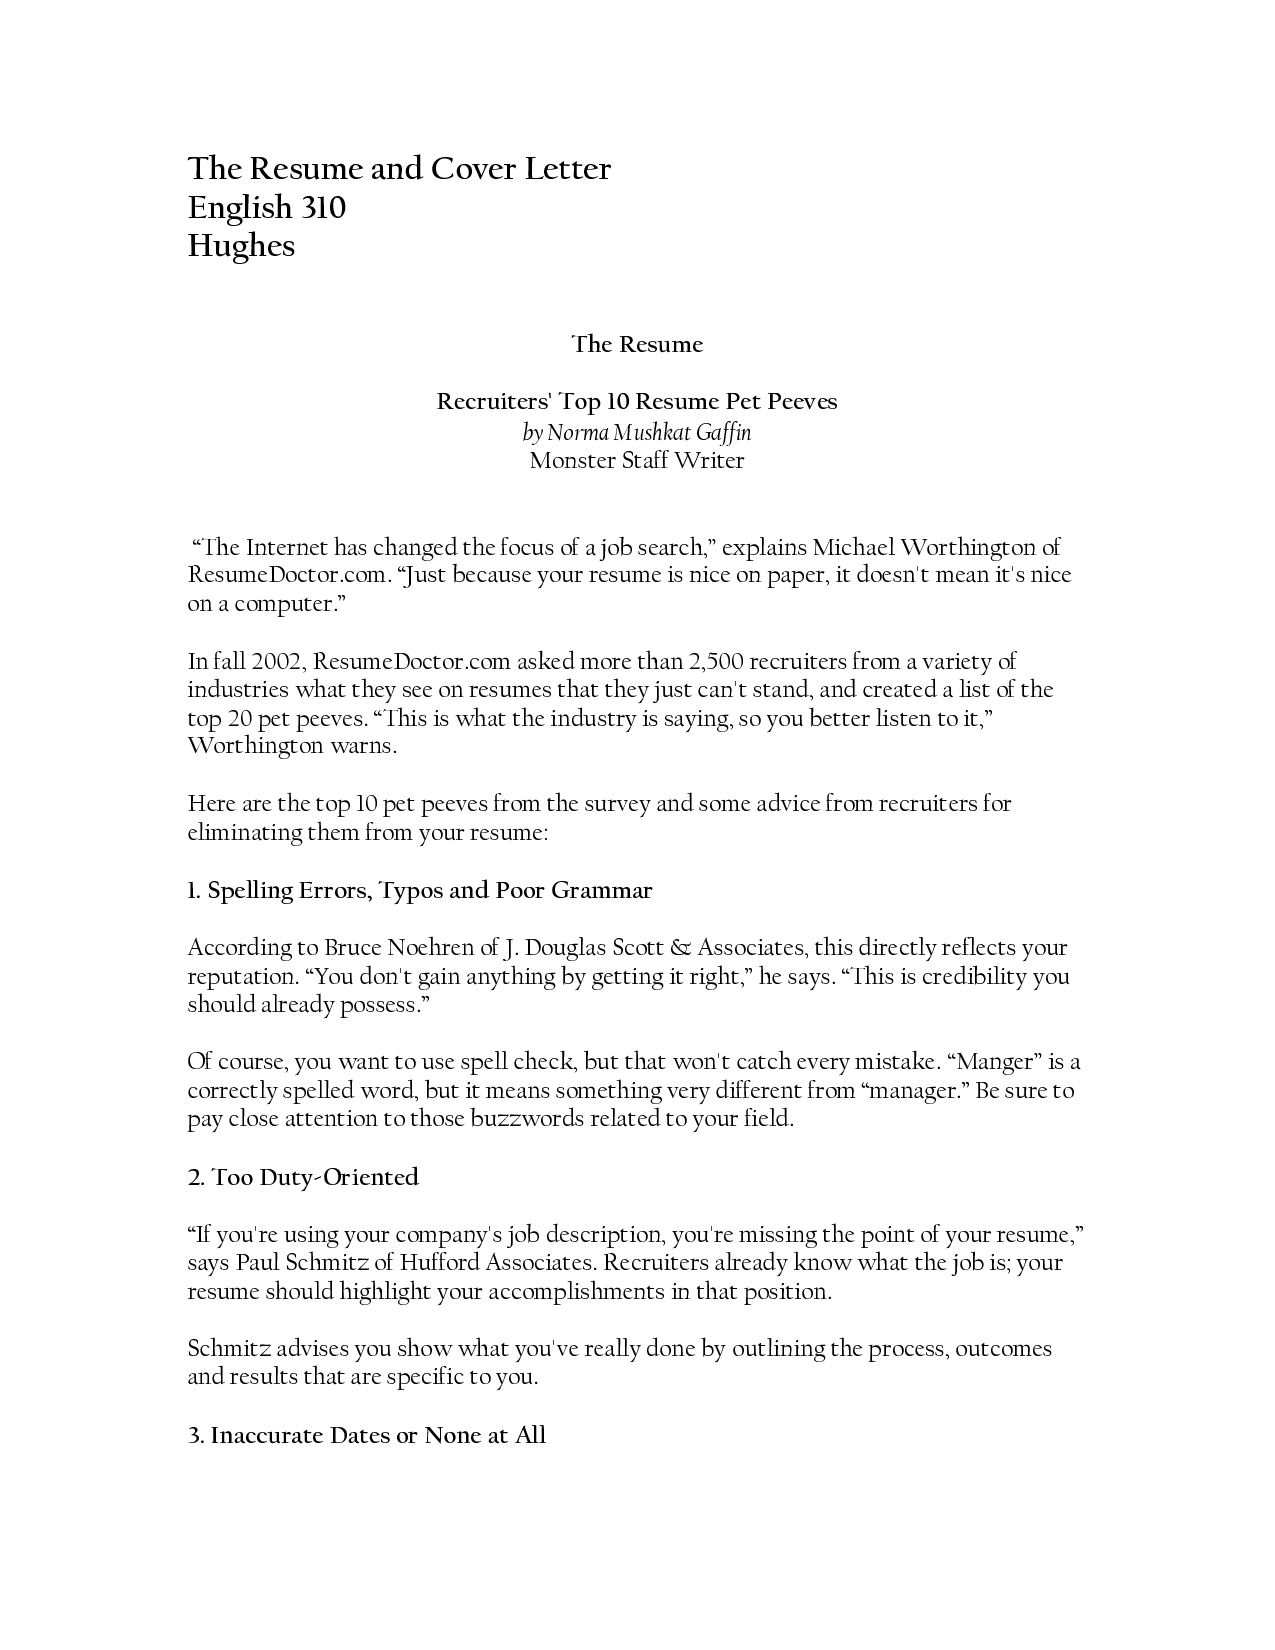 Relocation Cover Letter Template Free - format Relocation Cover Letter and Free Letter Relocation